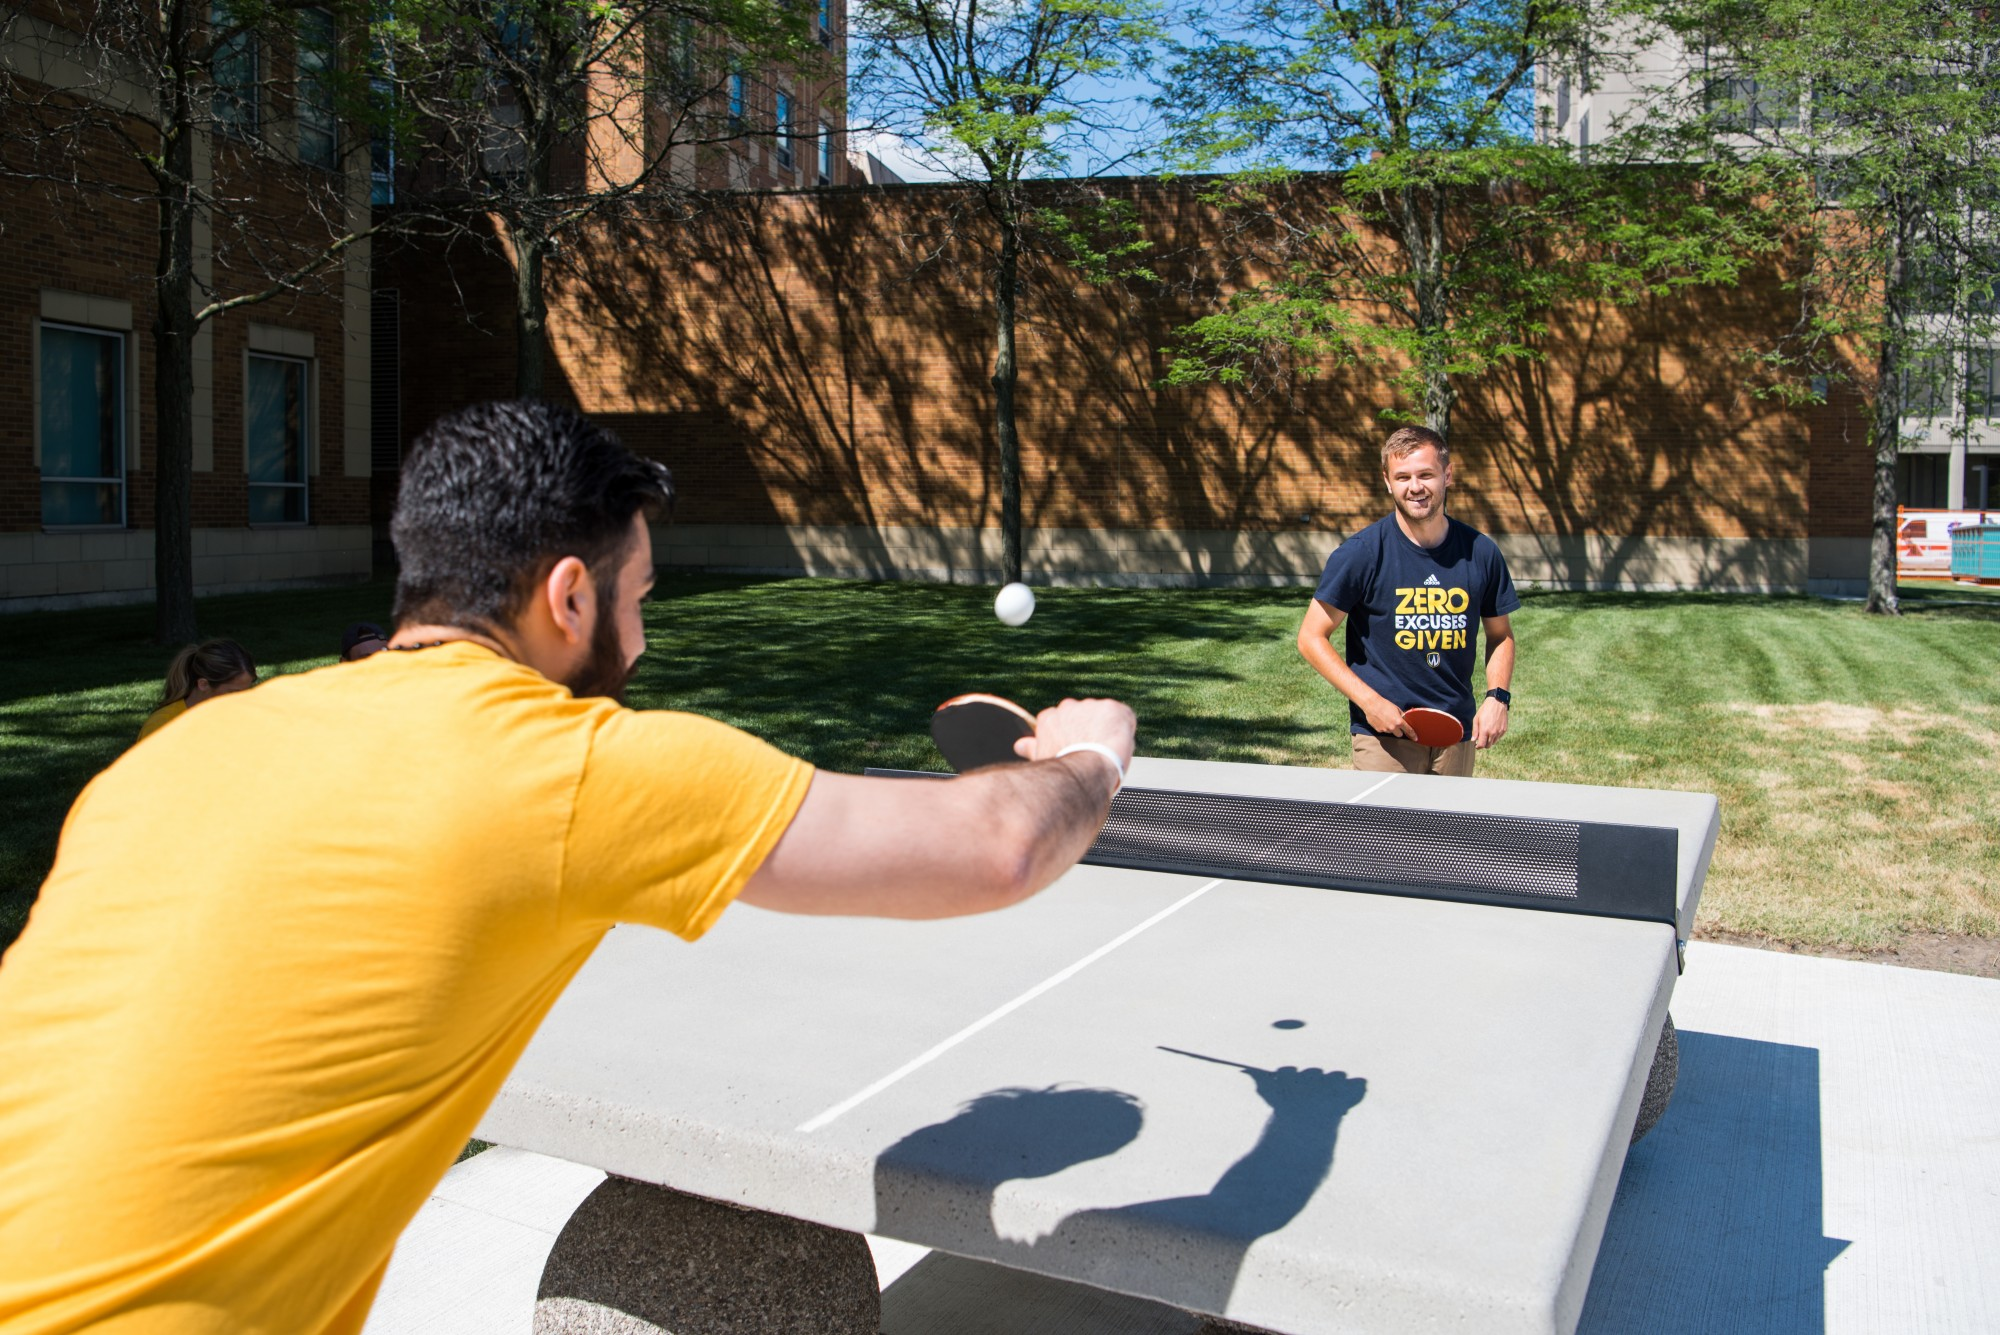 Students playing ping-pong at the David A. Wilson Commons